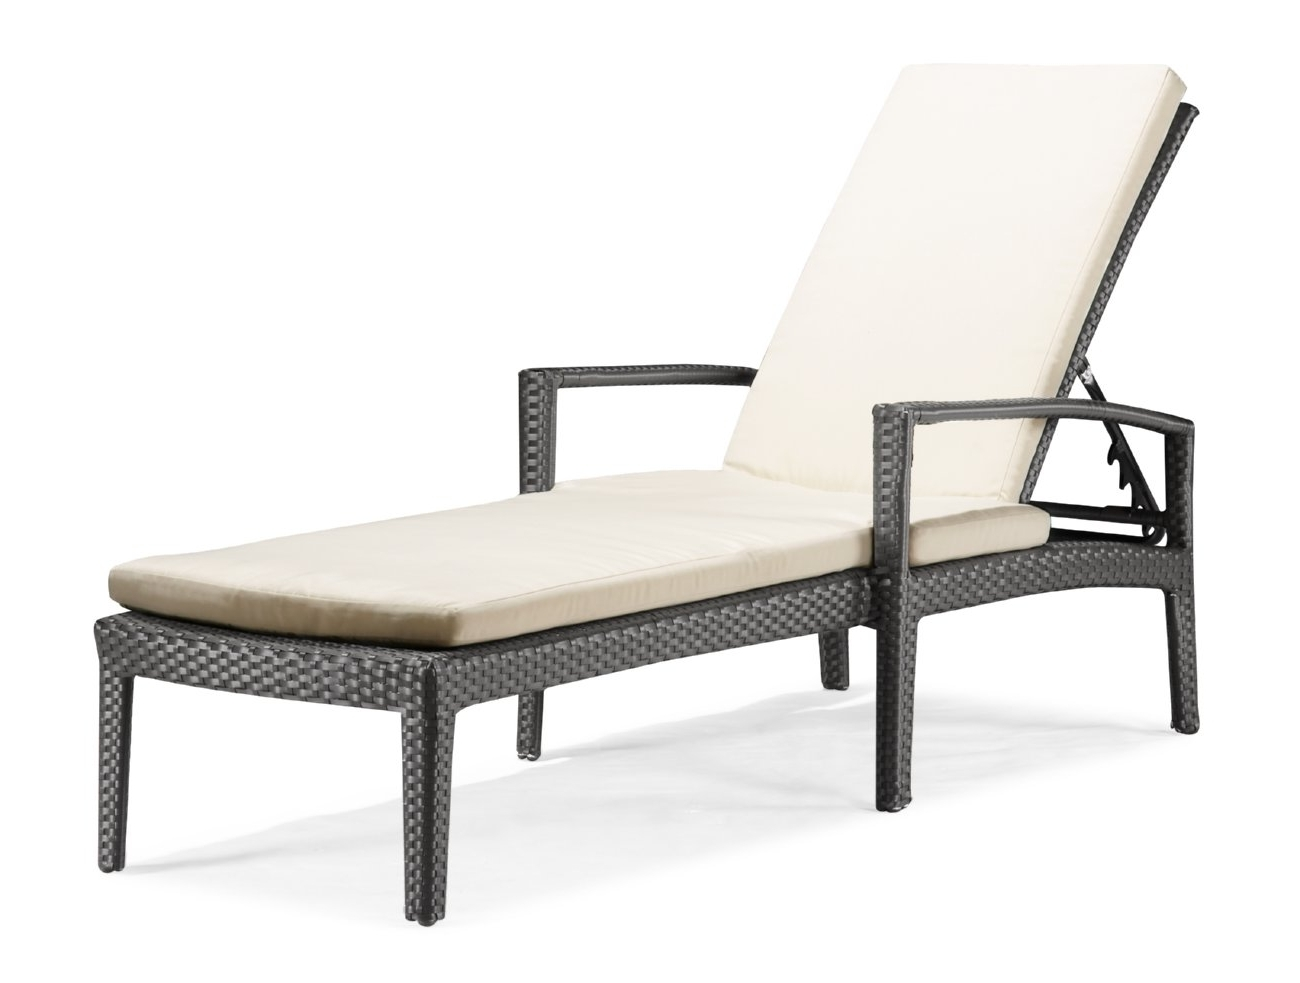 Widely Used Chaise Lounge Chairs For Pool Area Pertaining To Lounge Chair : Patio Table Patio Furniture Cushions Double Lounge (View 13 of 15)